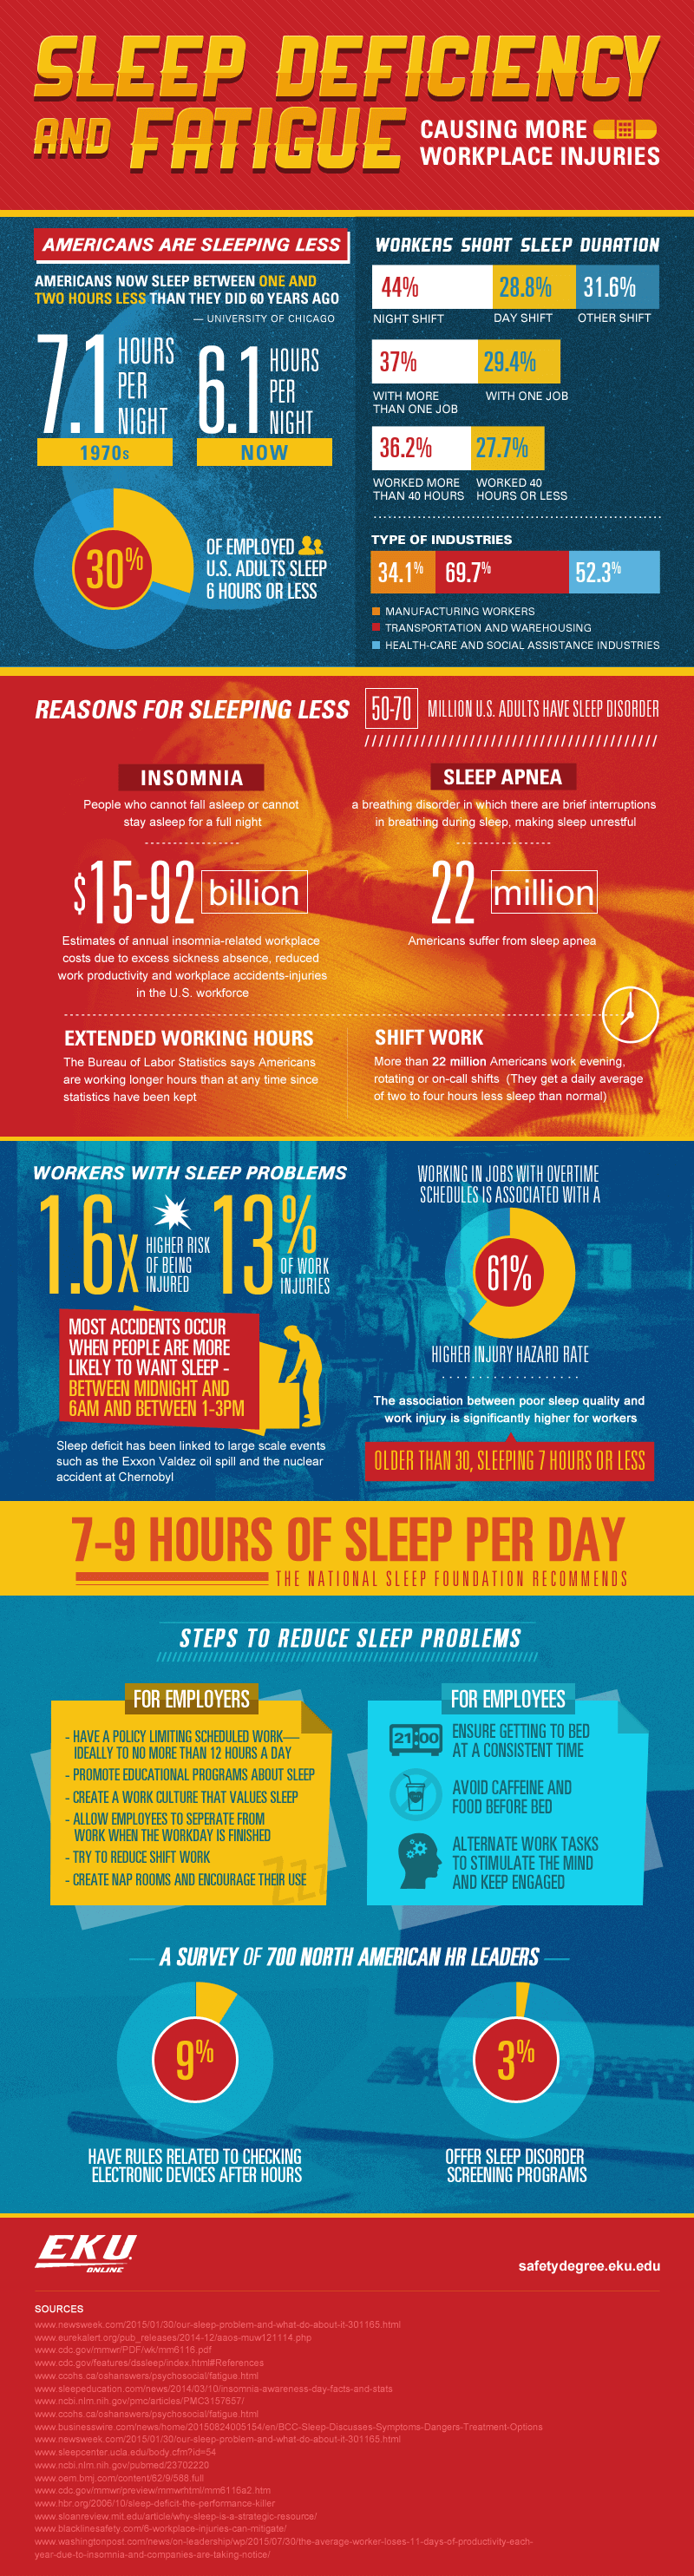 Sleep-Deficiency-and-Fatigue